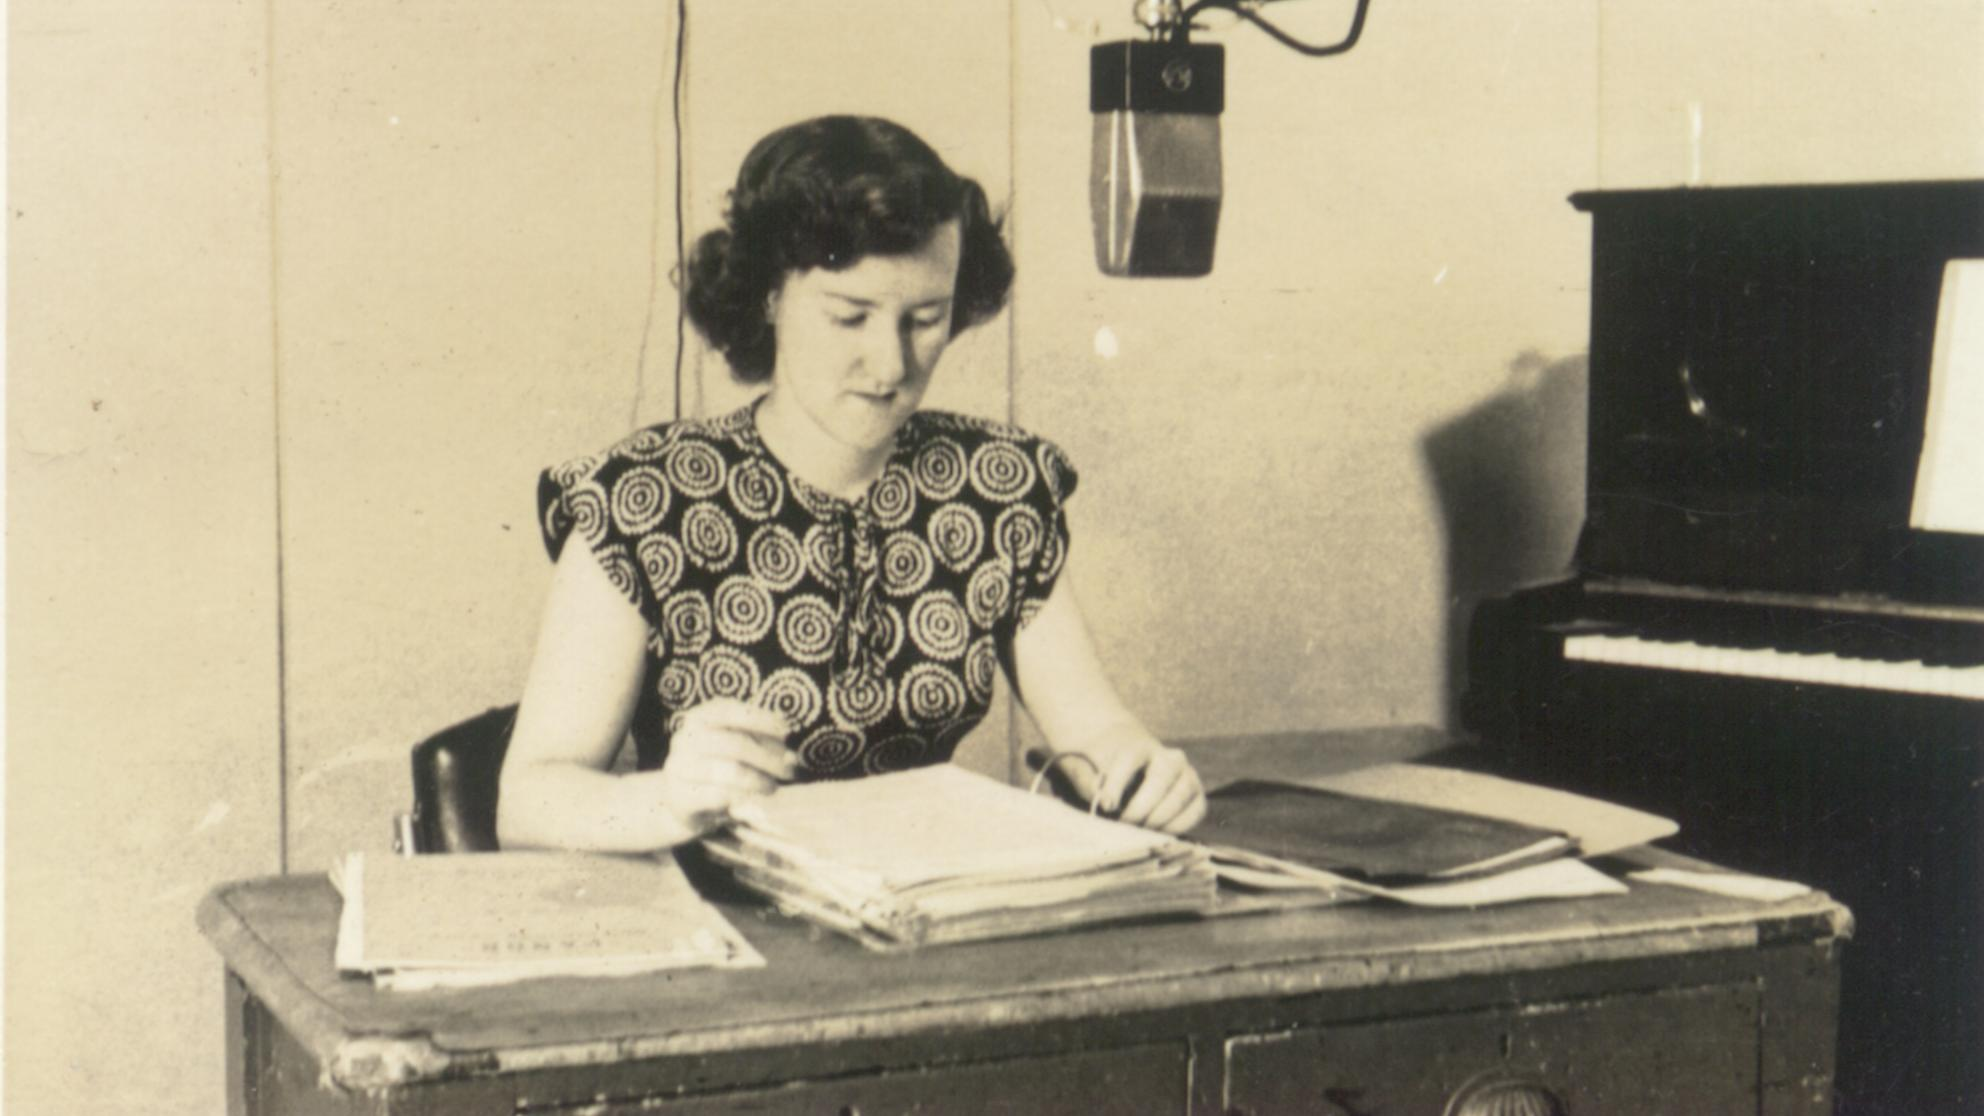 Enid Hogan behind a microphone in a radio studio